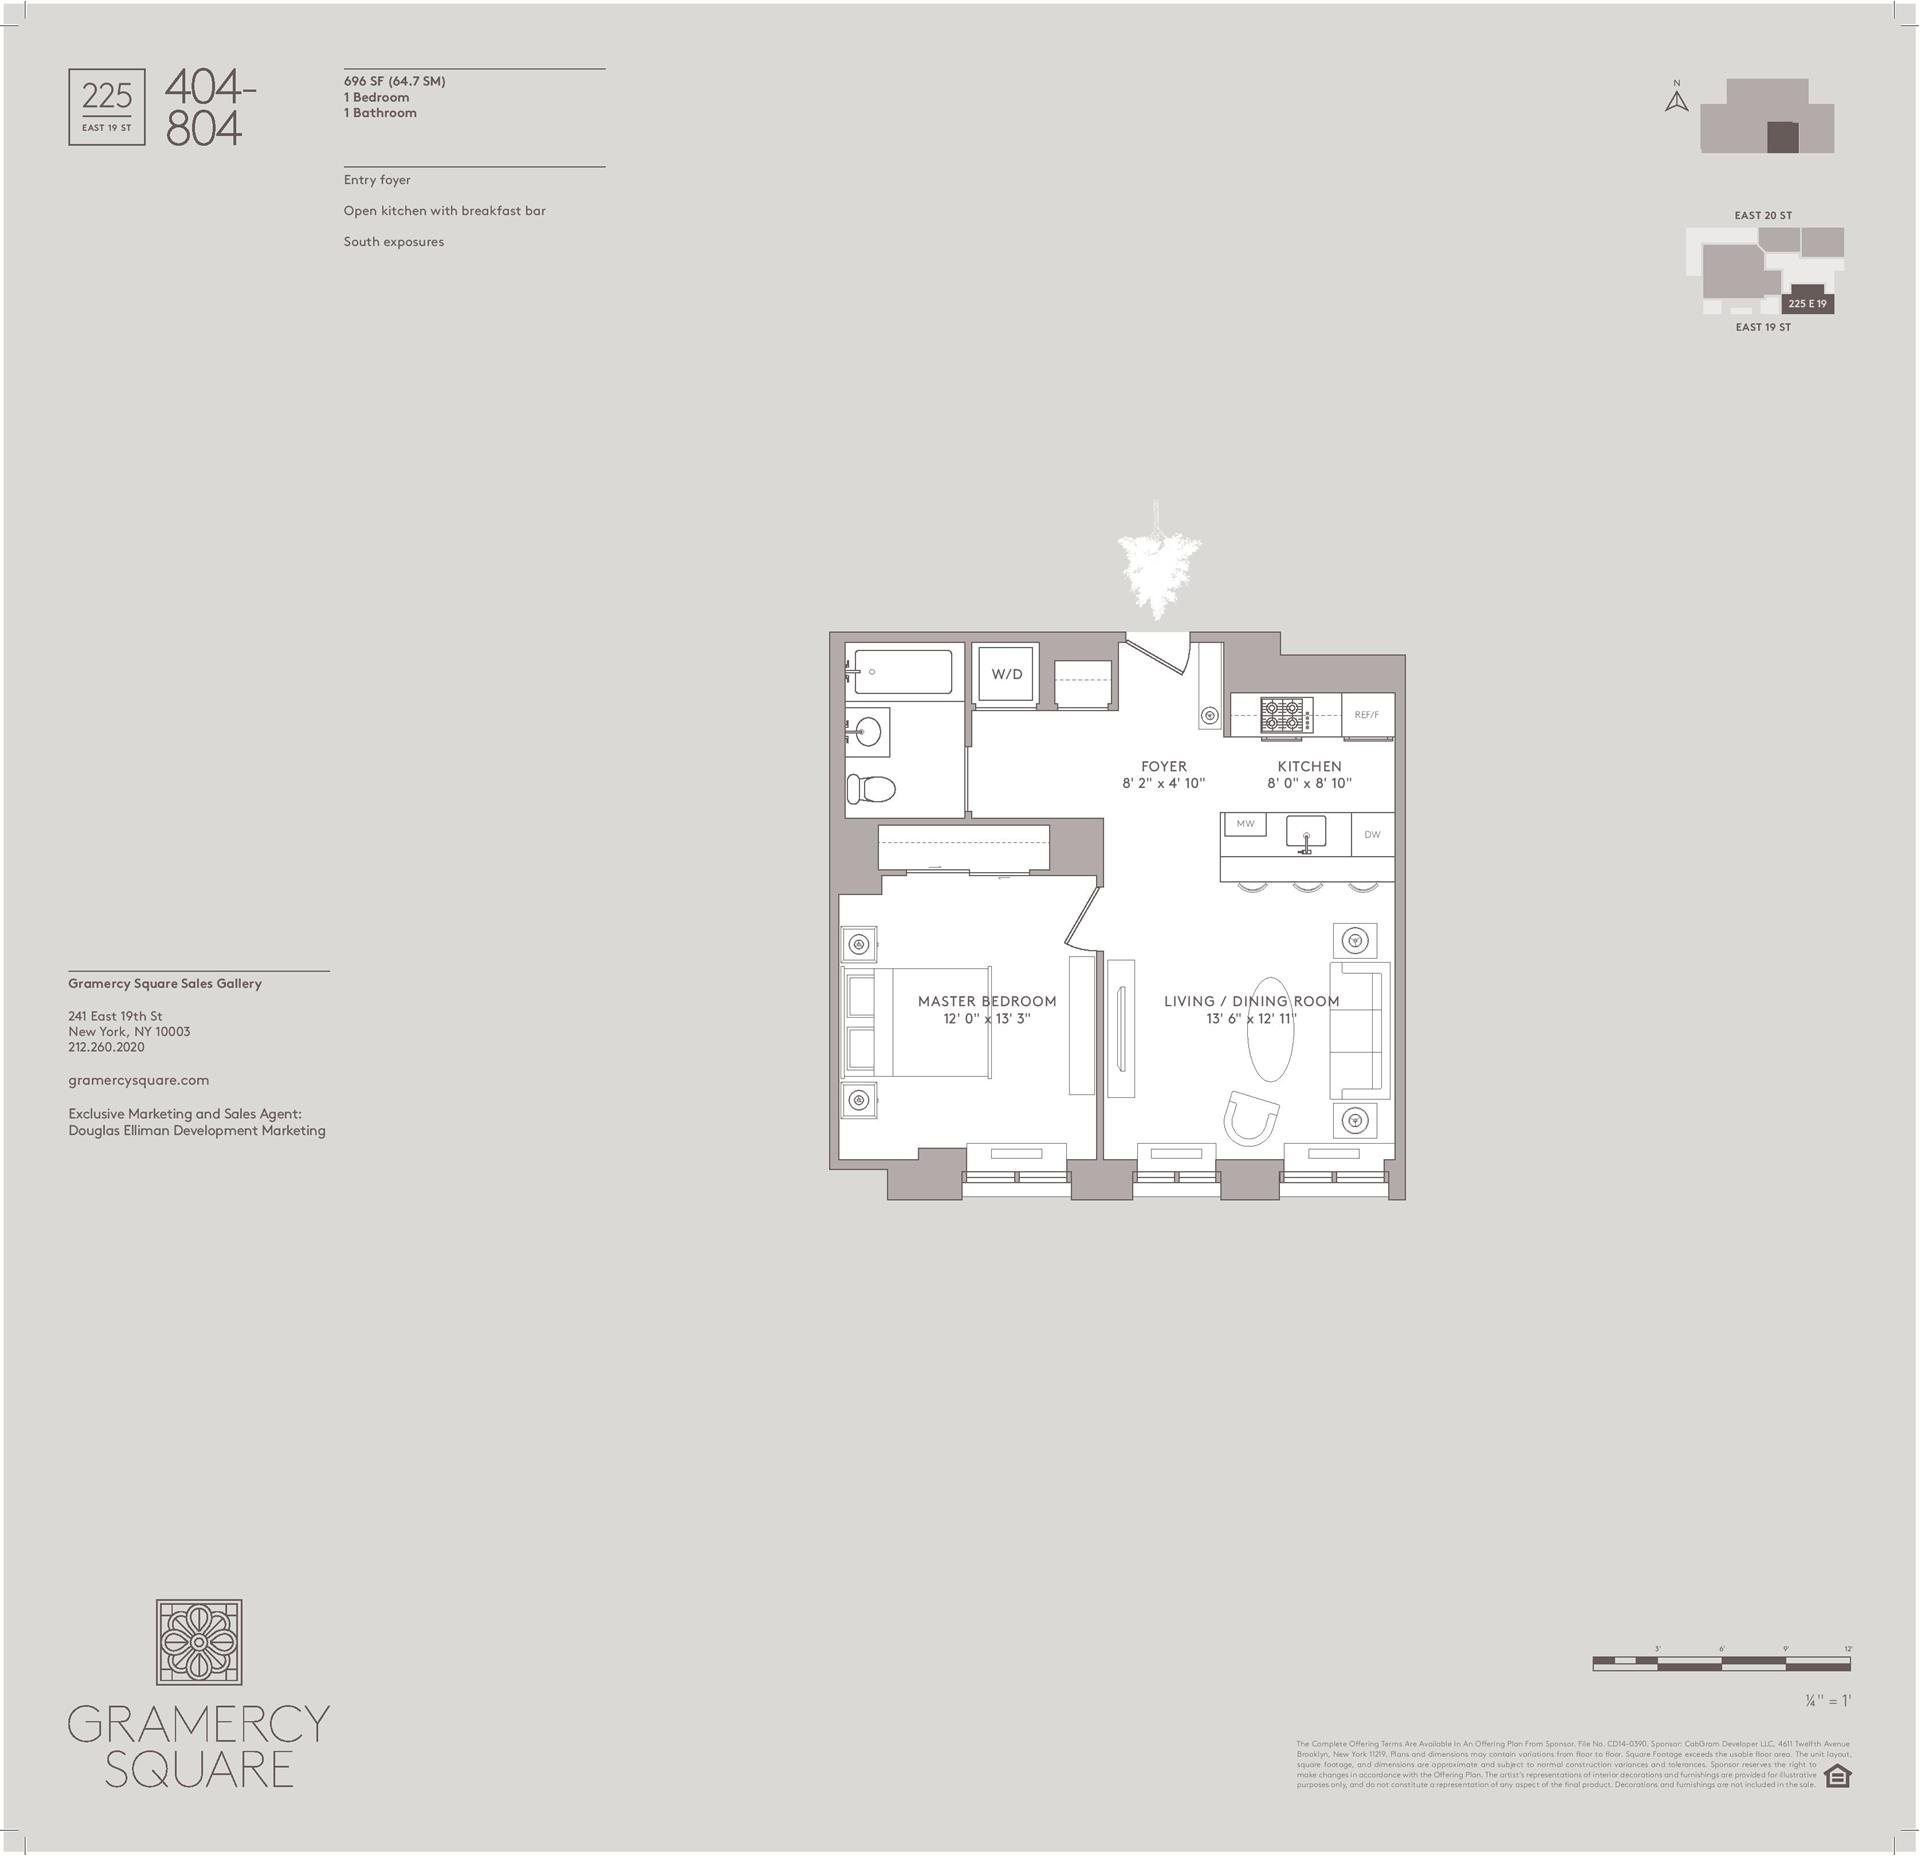 Floor plan of Gramercy Square, 225 East 19th St, 804 - Gramercy - Union Square, New York